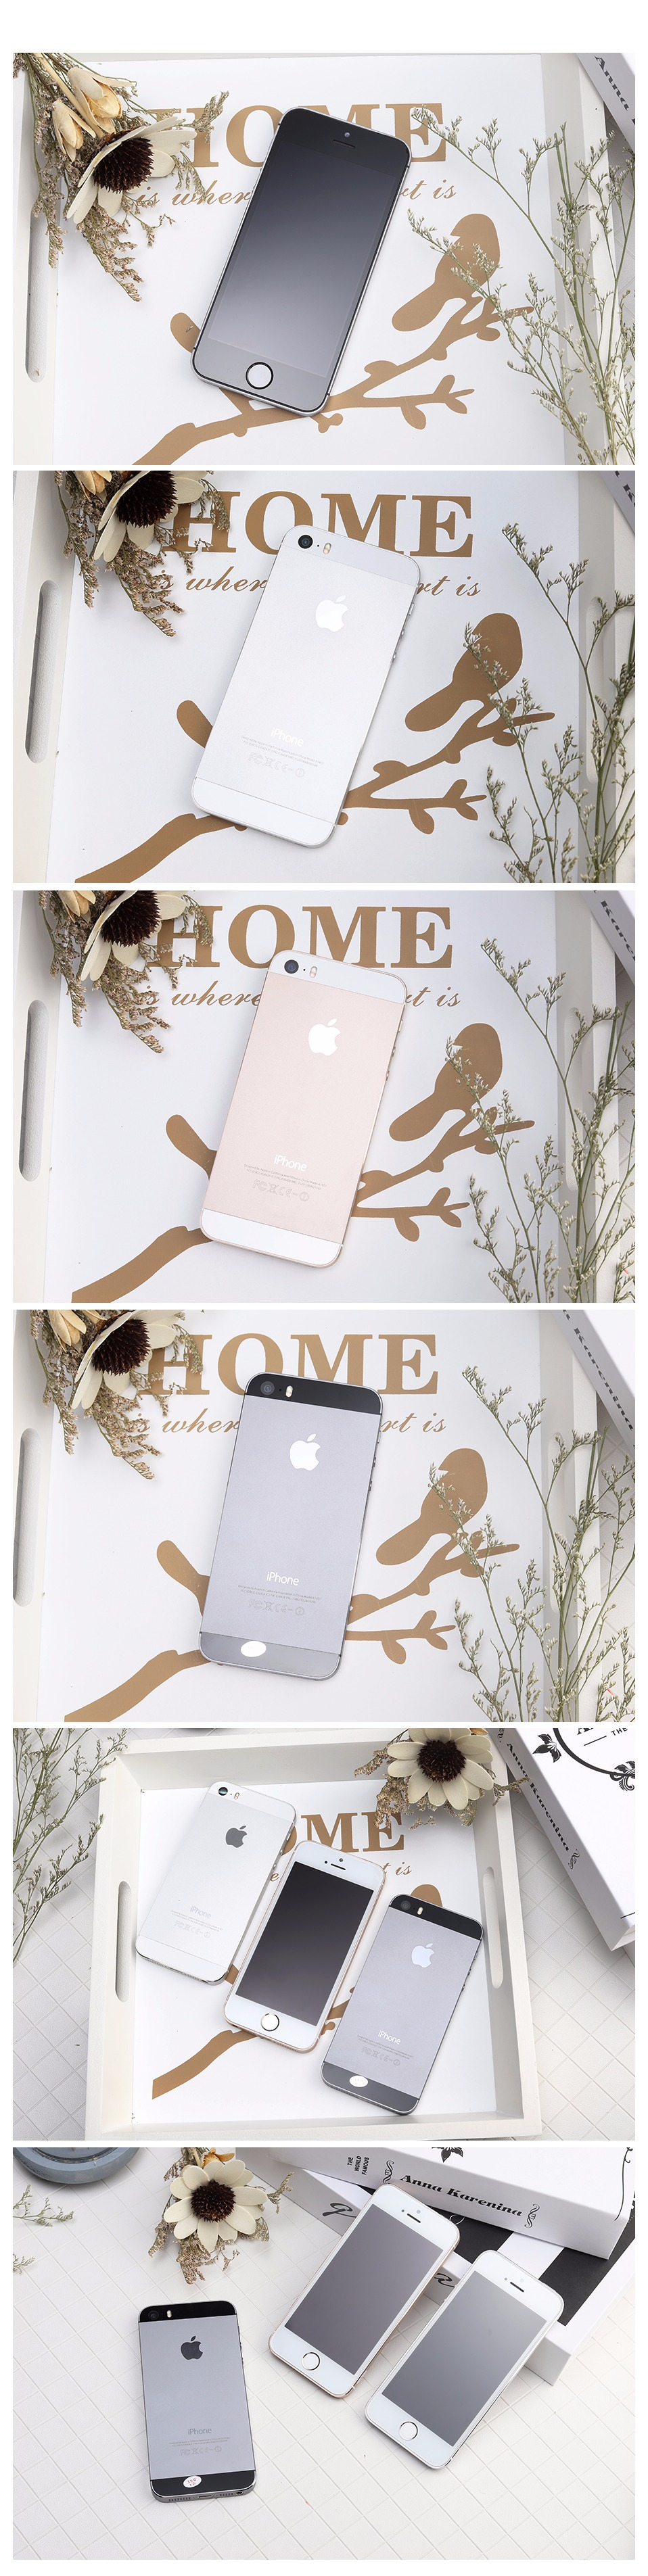 Apple Iphone 5s 4g Lte Smartphone 40 Inches 16gb 32gb 64gb 32 Gb 1 Years Waranty Description Bestsupplier Specilizedinusedphonesforeigntradebusinessformorethan10years Oursmartphonegrade